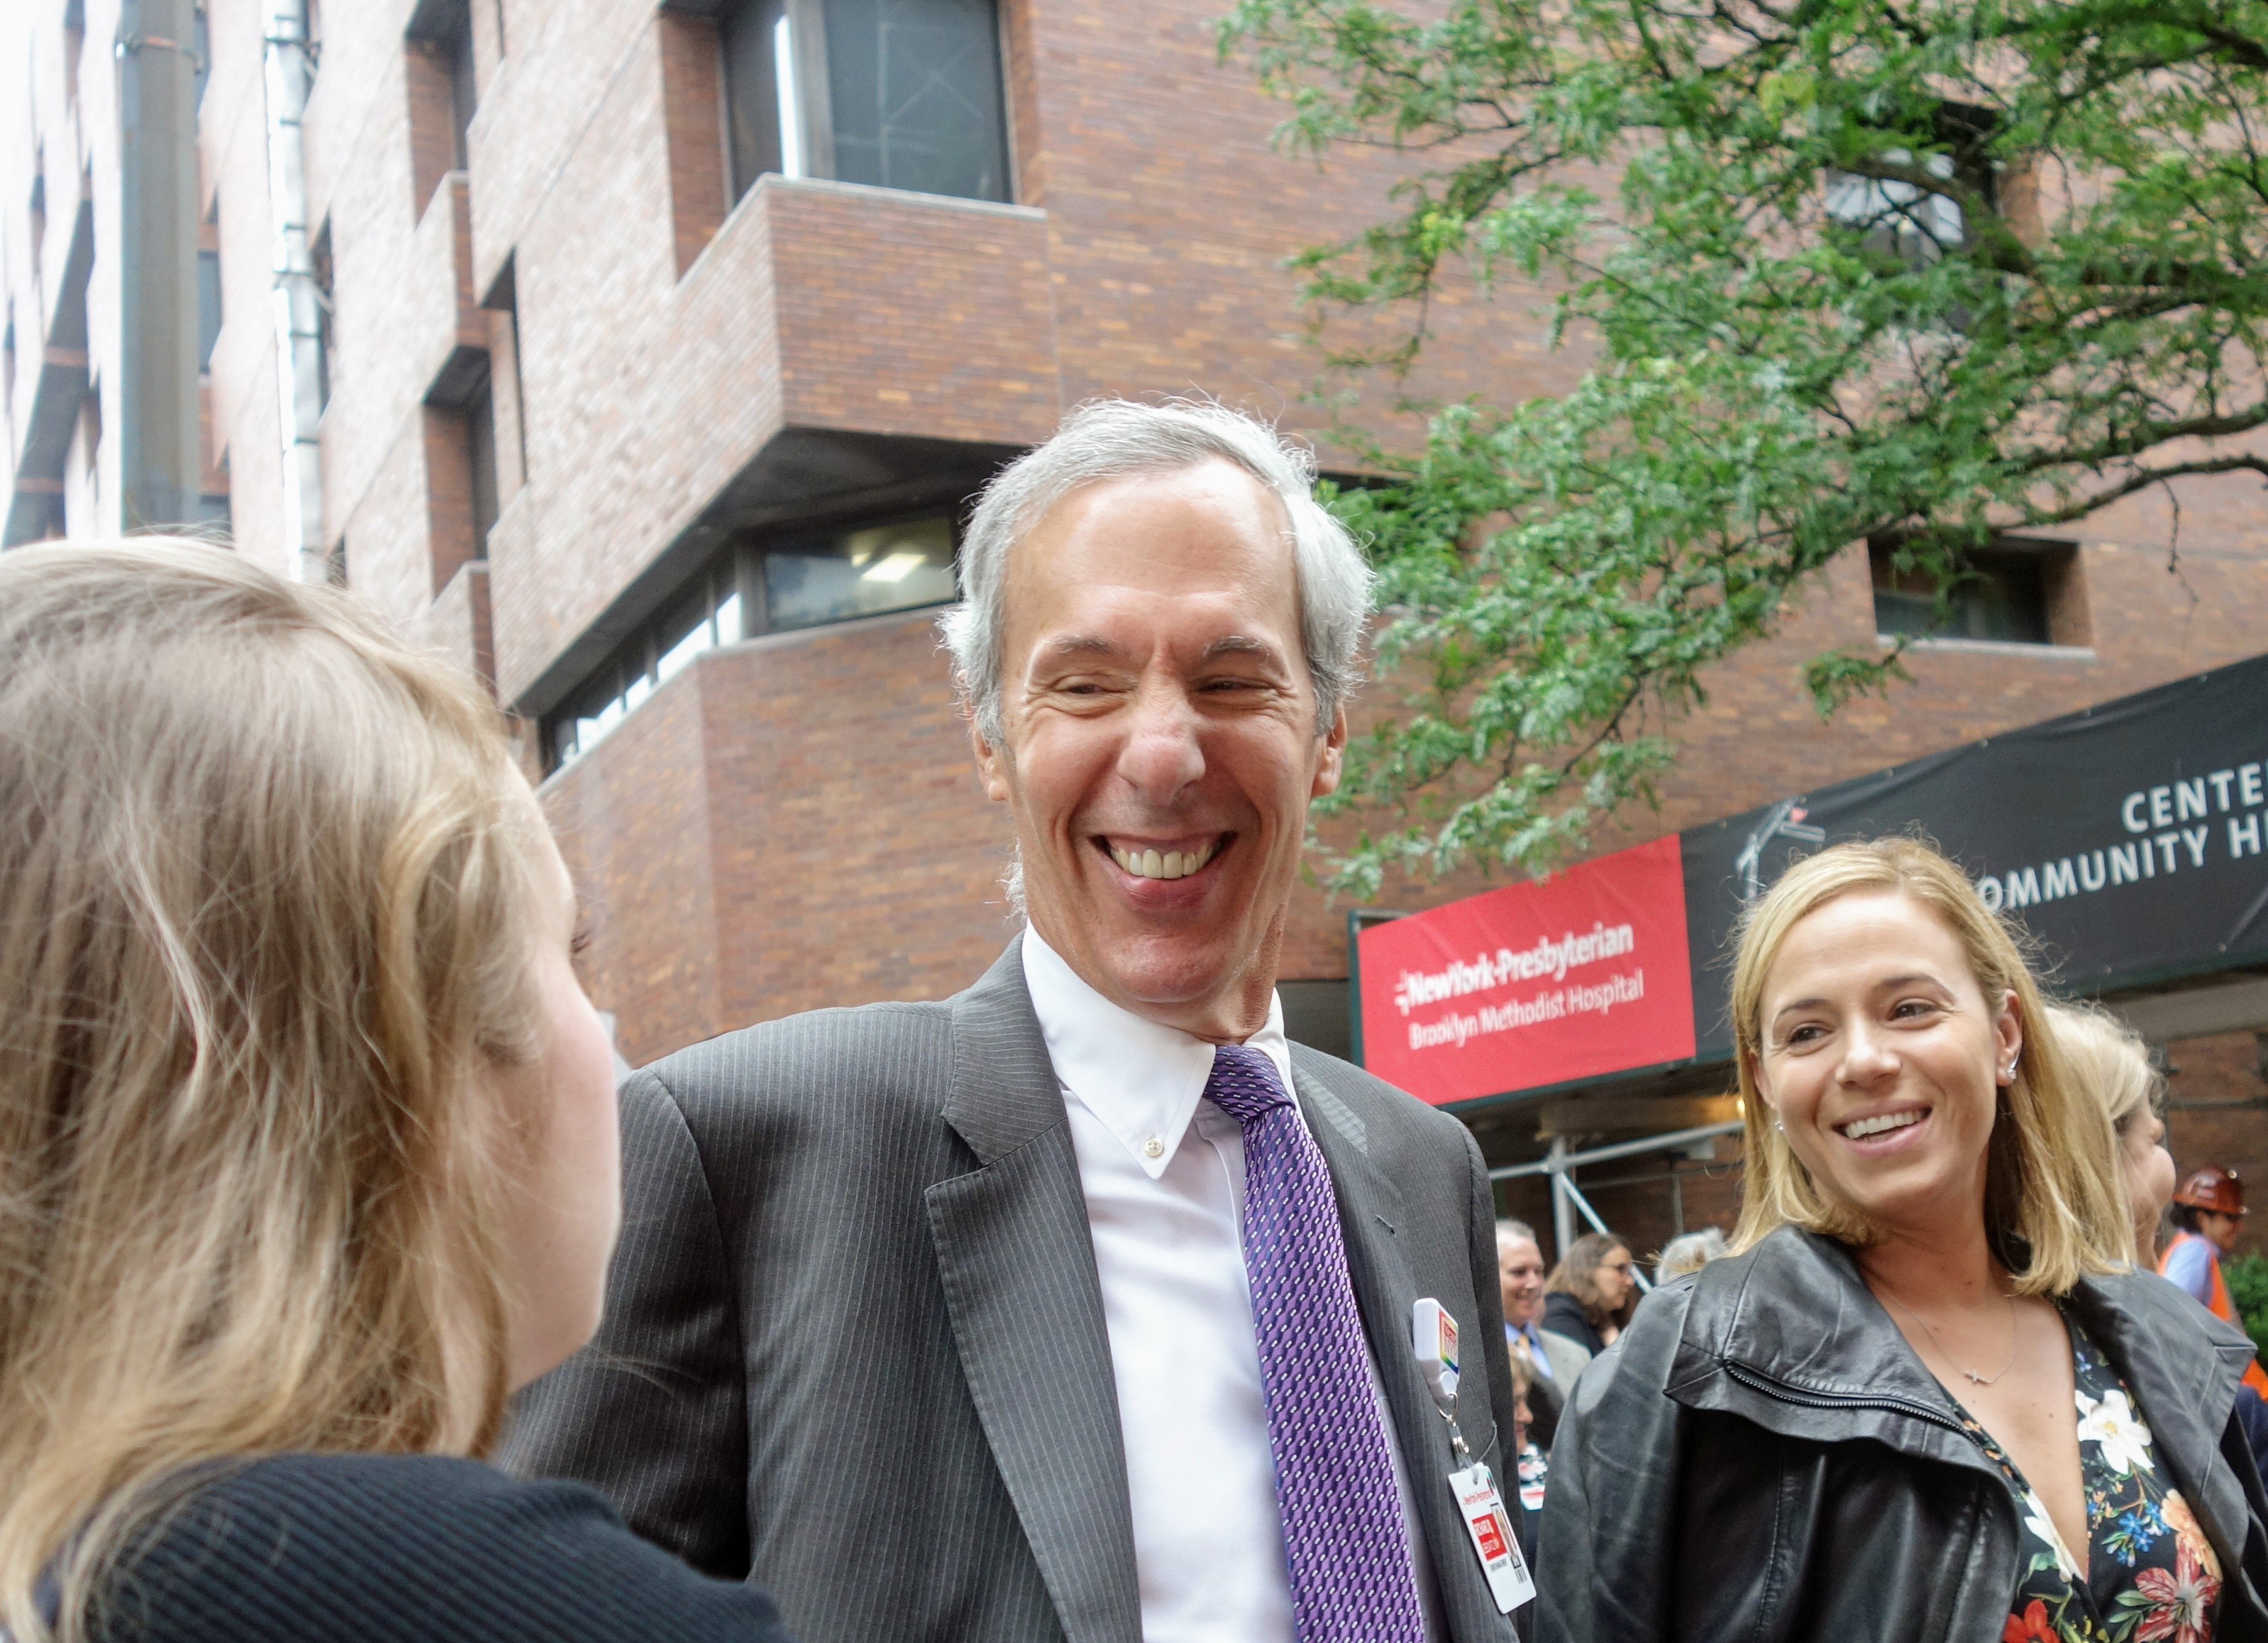 NYP Brooklyn Methodist Hospital's outpatient health center to open